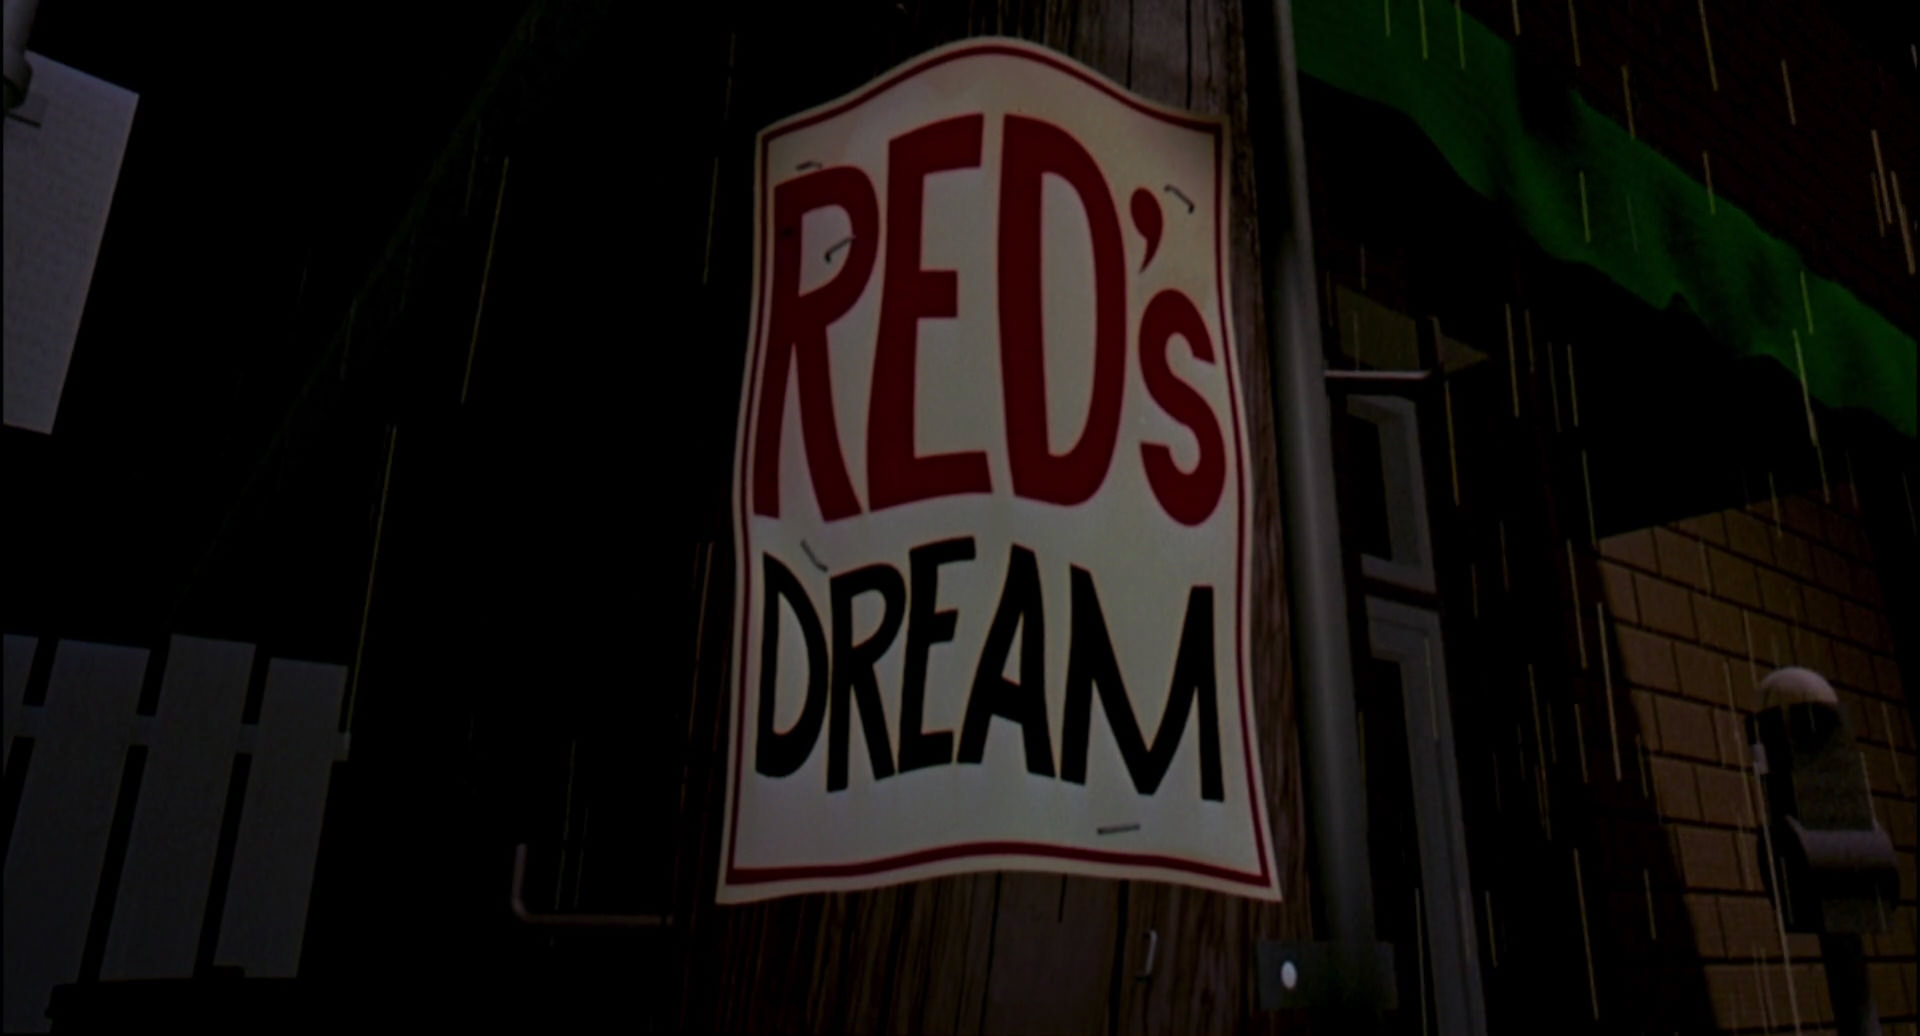 File:Title-redsdream.jpg